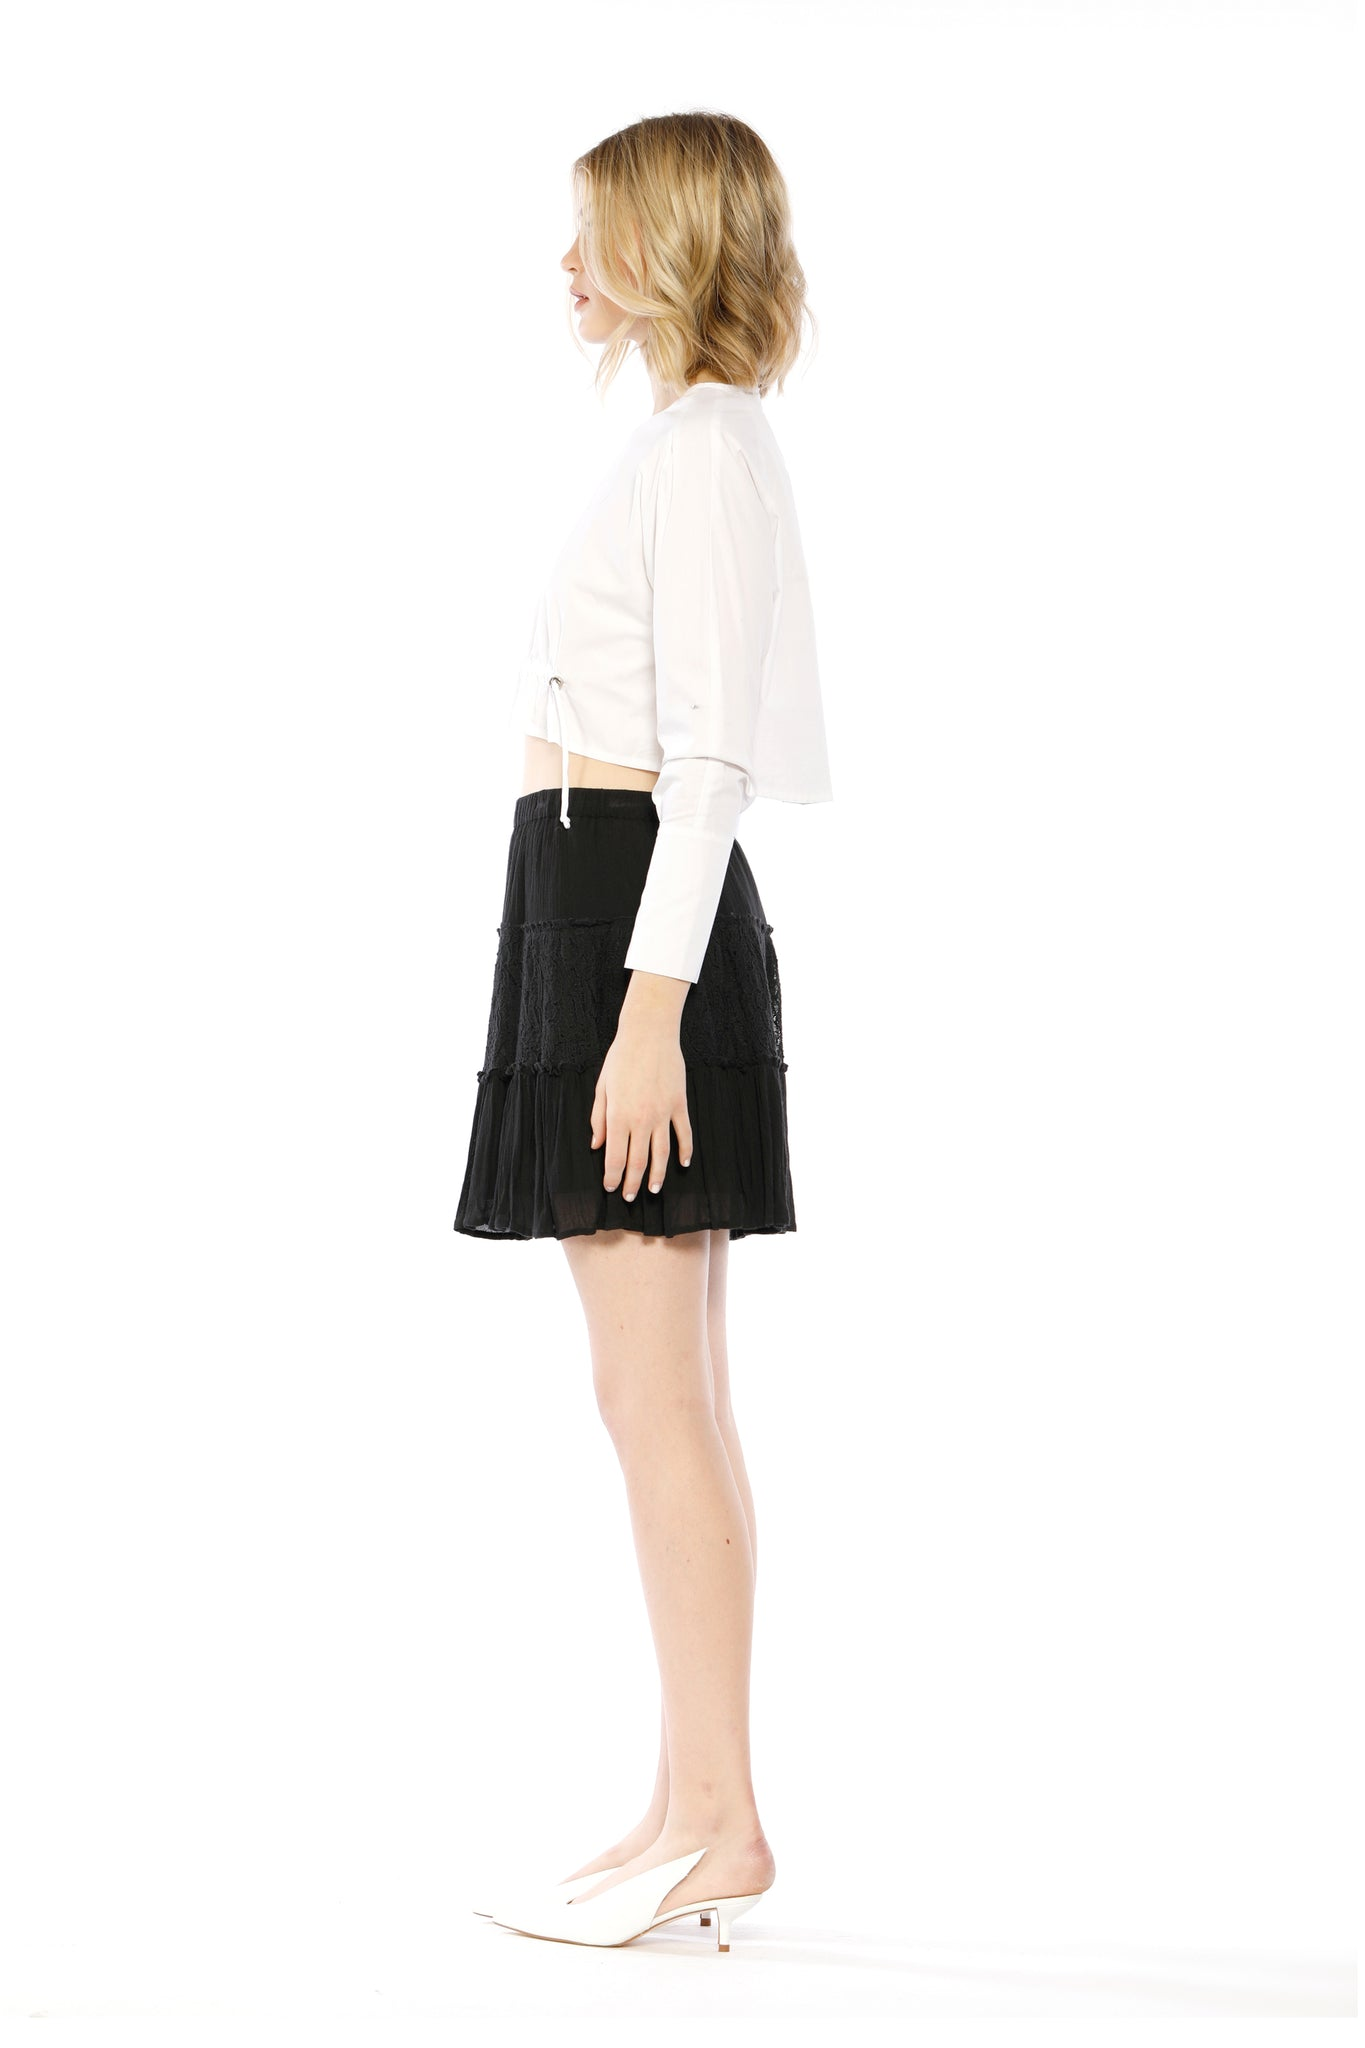 Side view of Fin Skirt, black skirt with layered frills and ruffles. 100% cotton and machine-washable